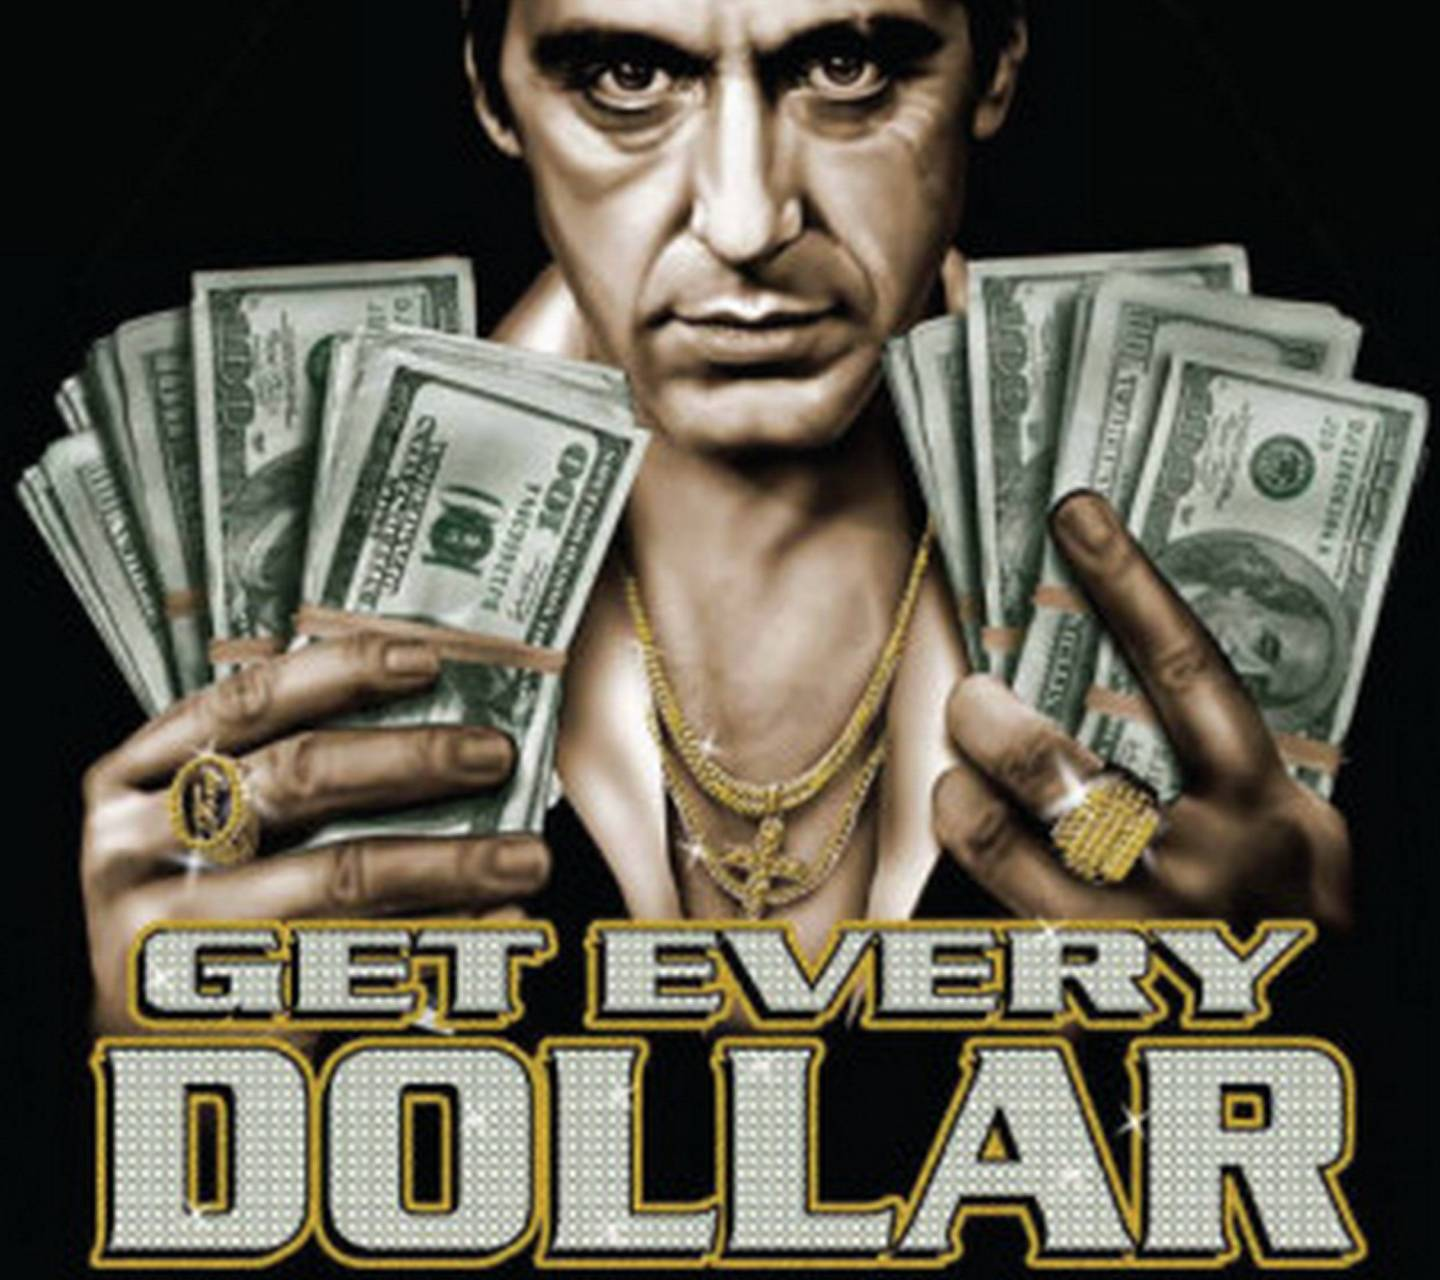 Scarface money wallpaper by itachikun7 ae free on zedge - Money hd wallpapers 1080p ...